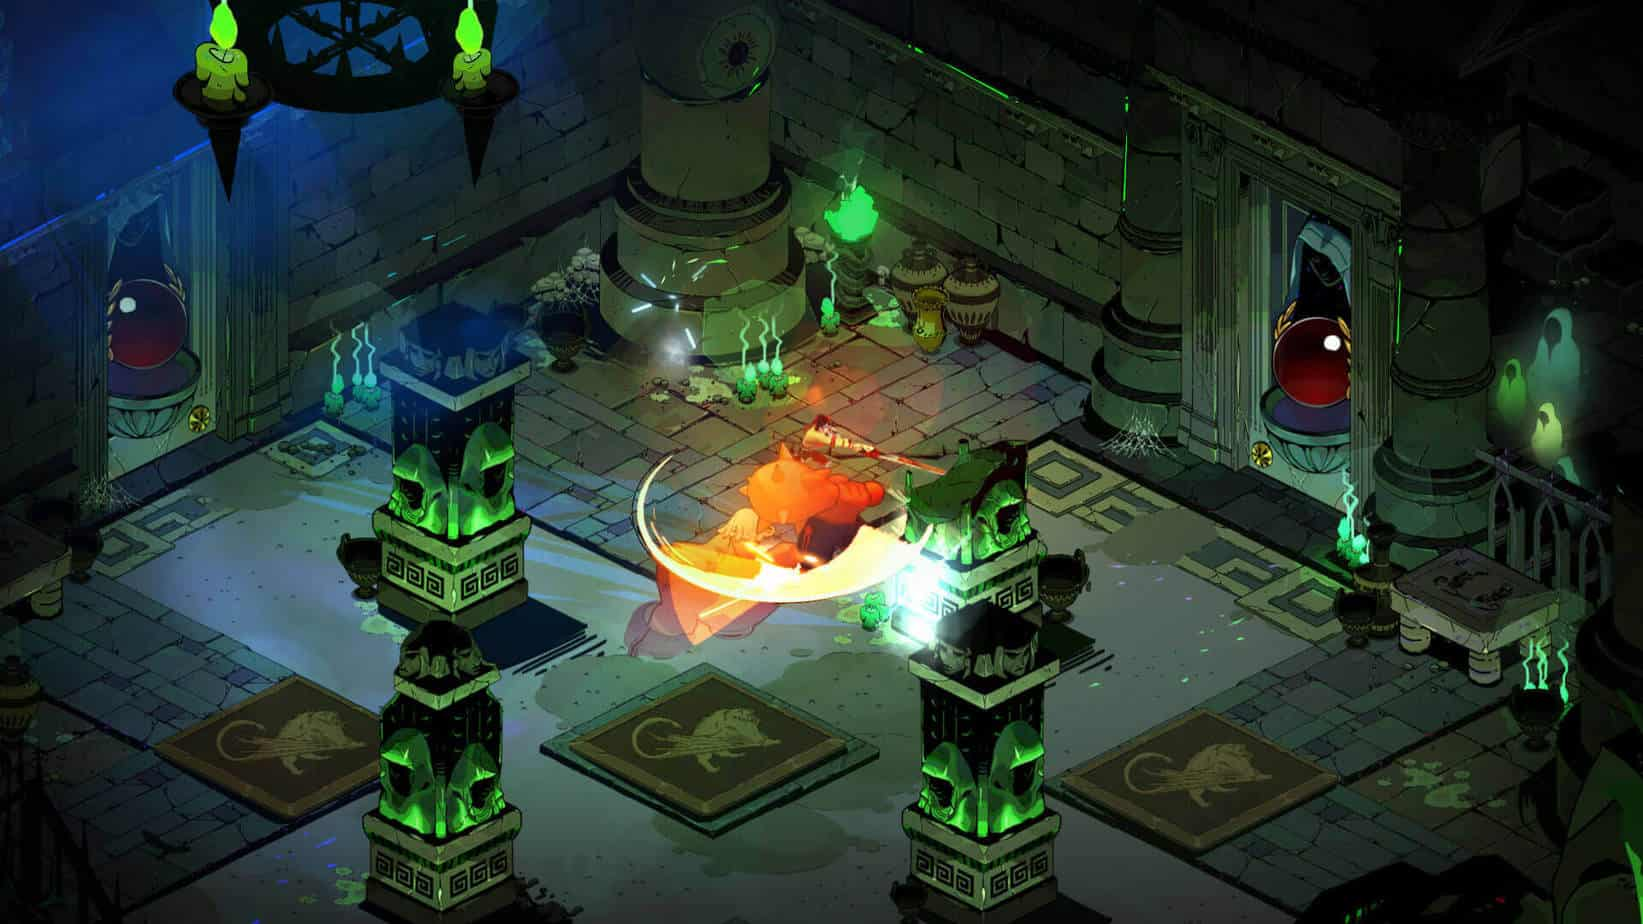 A top down view as seen in the game Hades, the players character is attacking with a weapon and hitting a large enemy known as a shade.